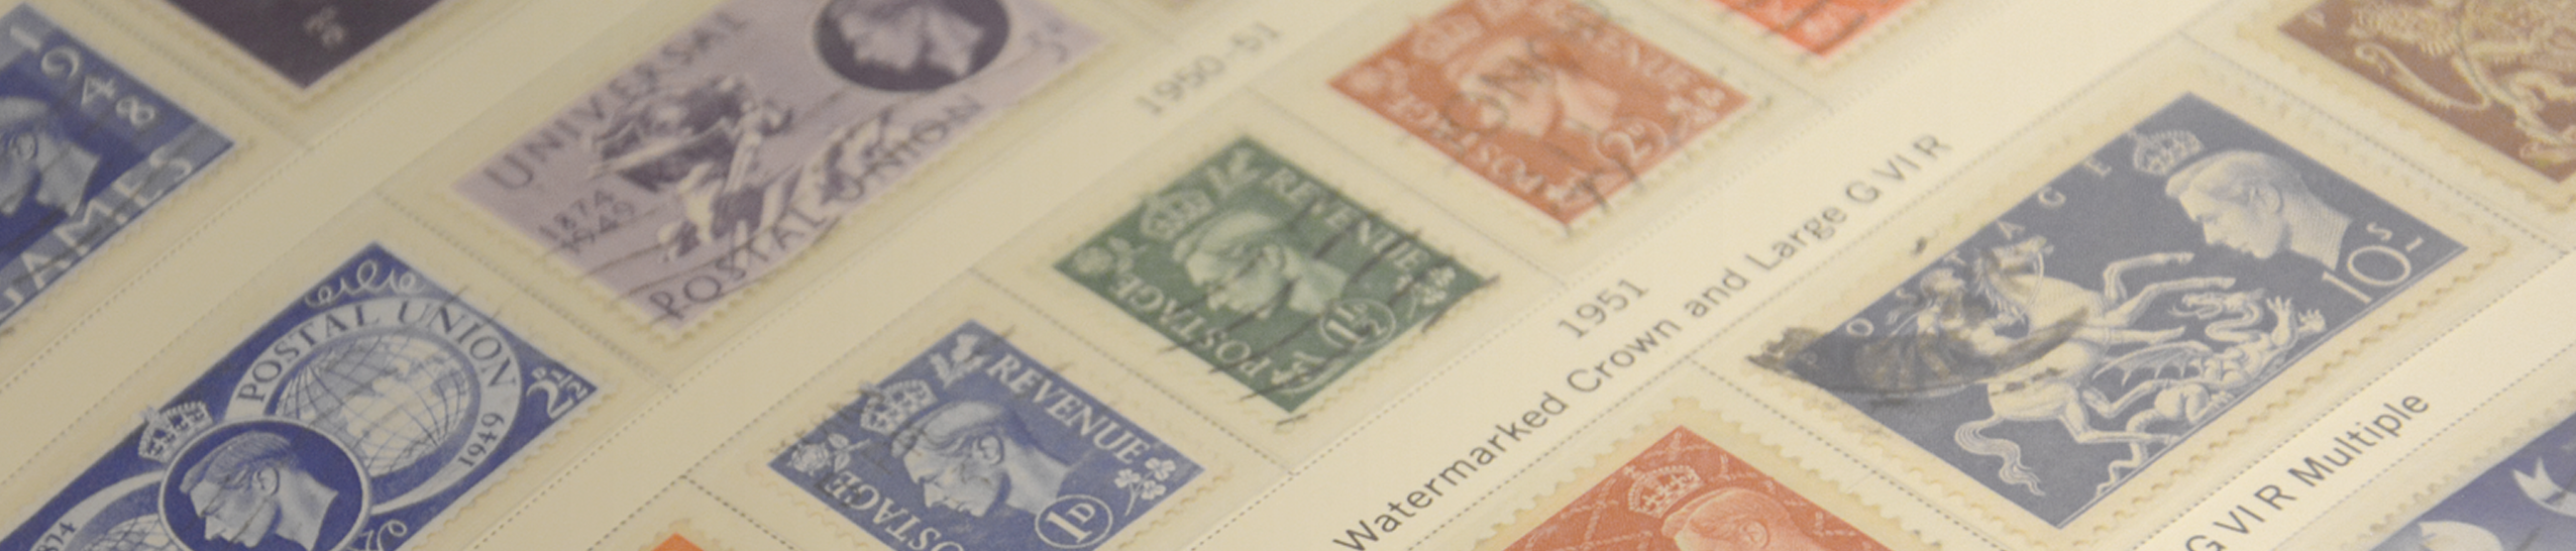 consign stamps collection